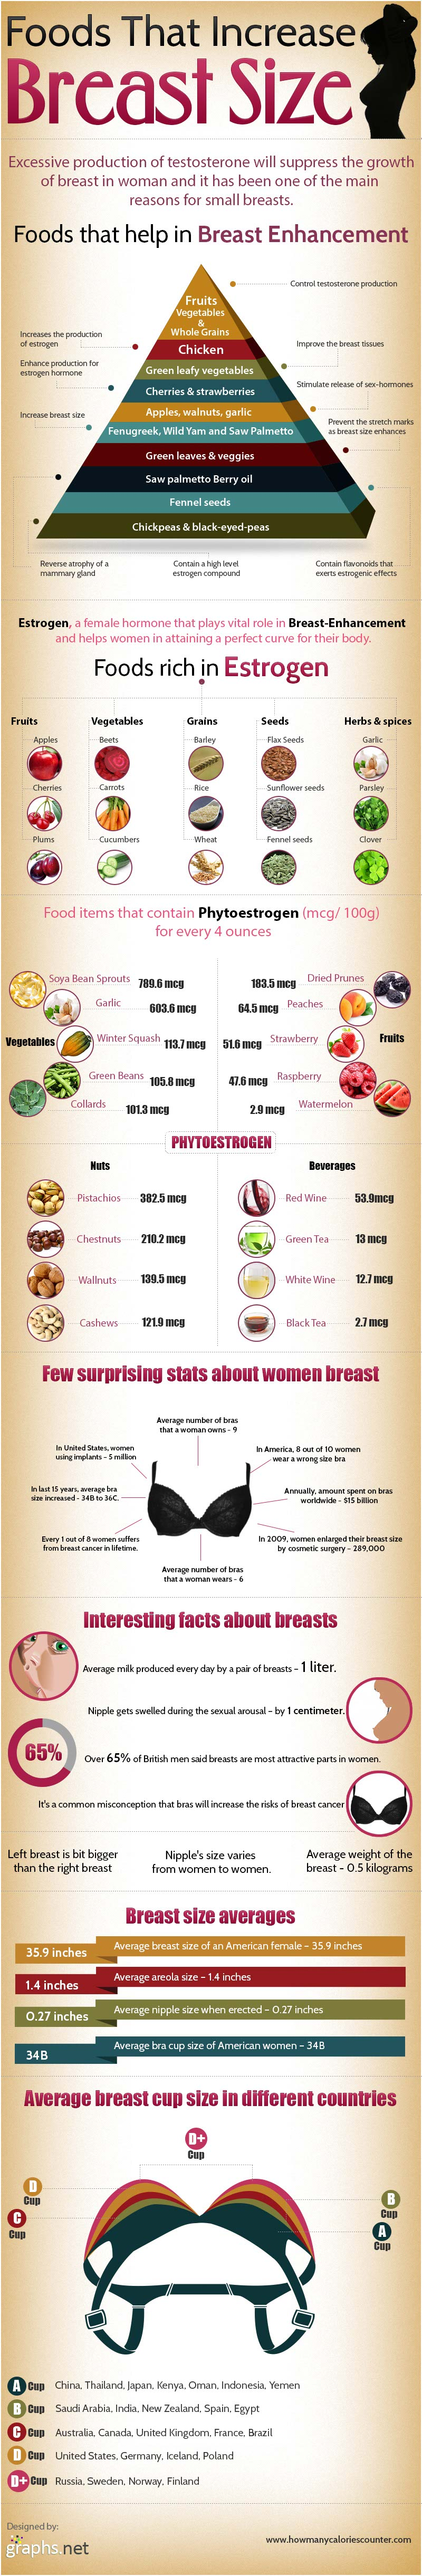 Boost Bust Naturally-Infographic